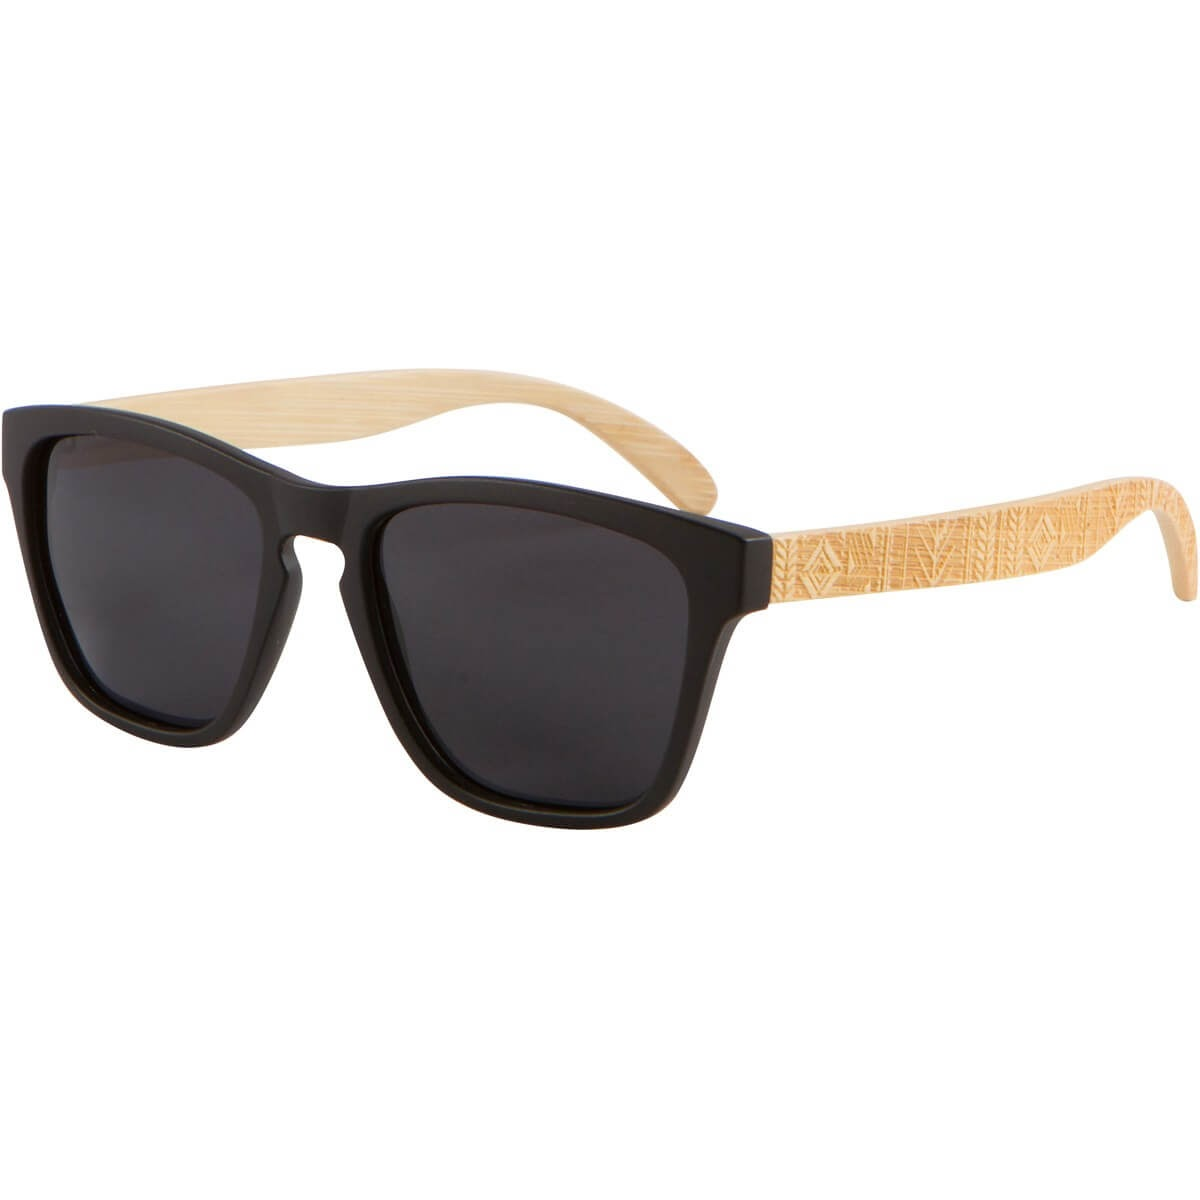 Shiner Tribe Sunglasses